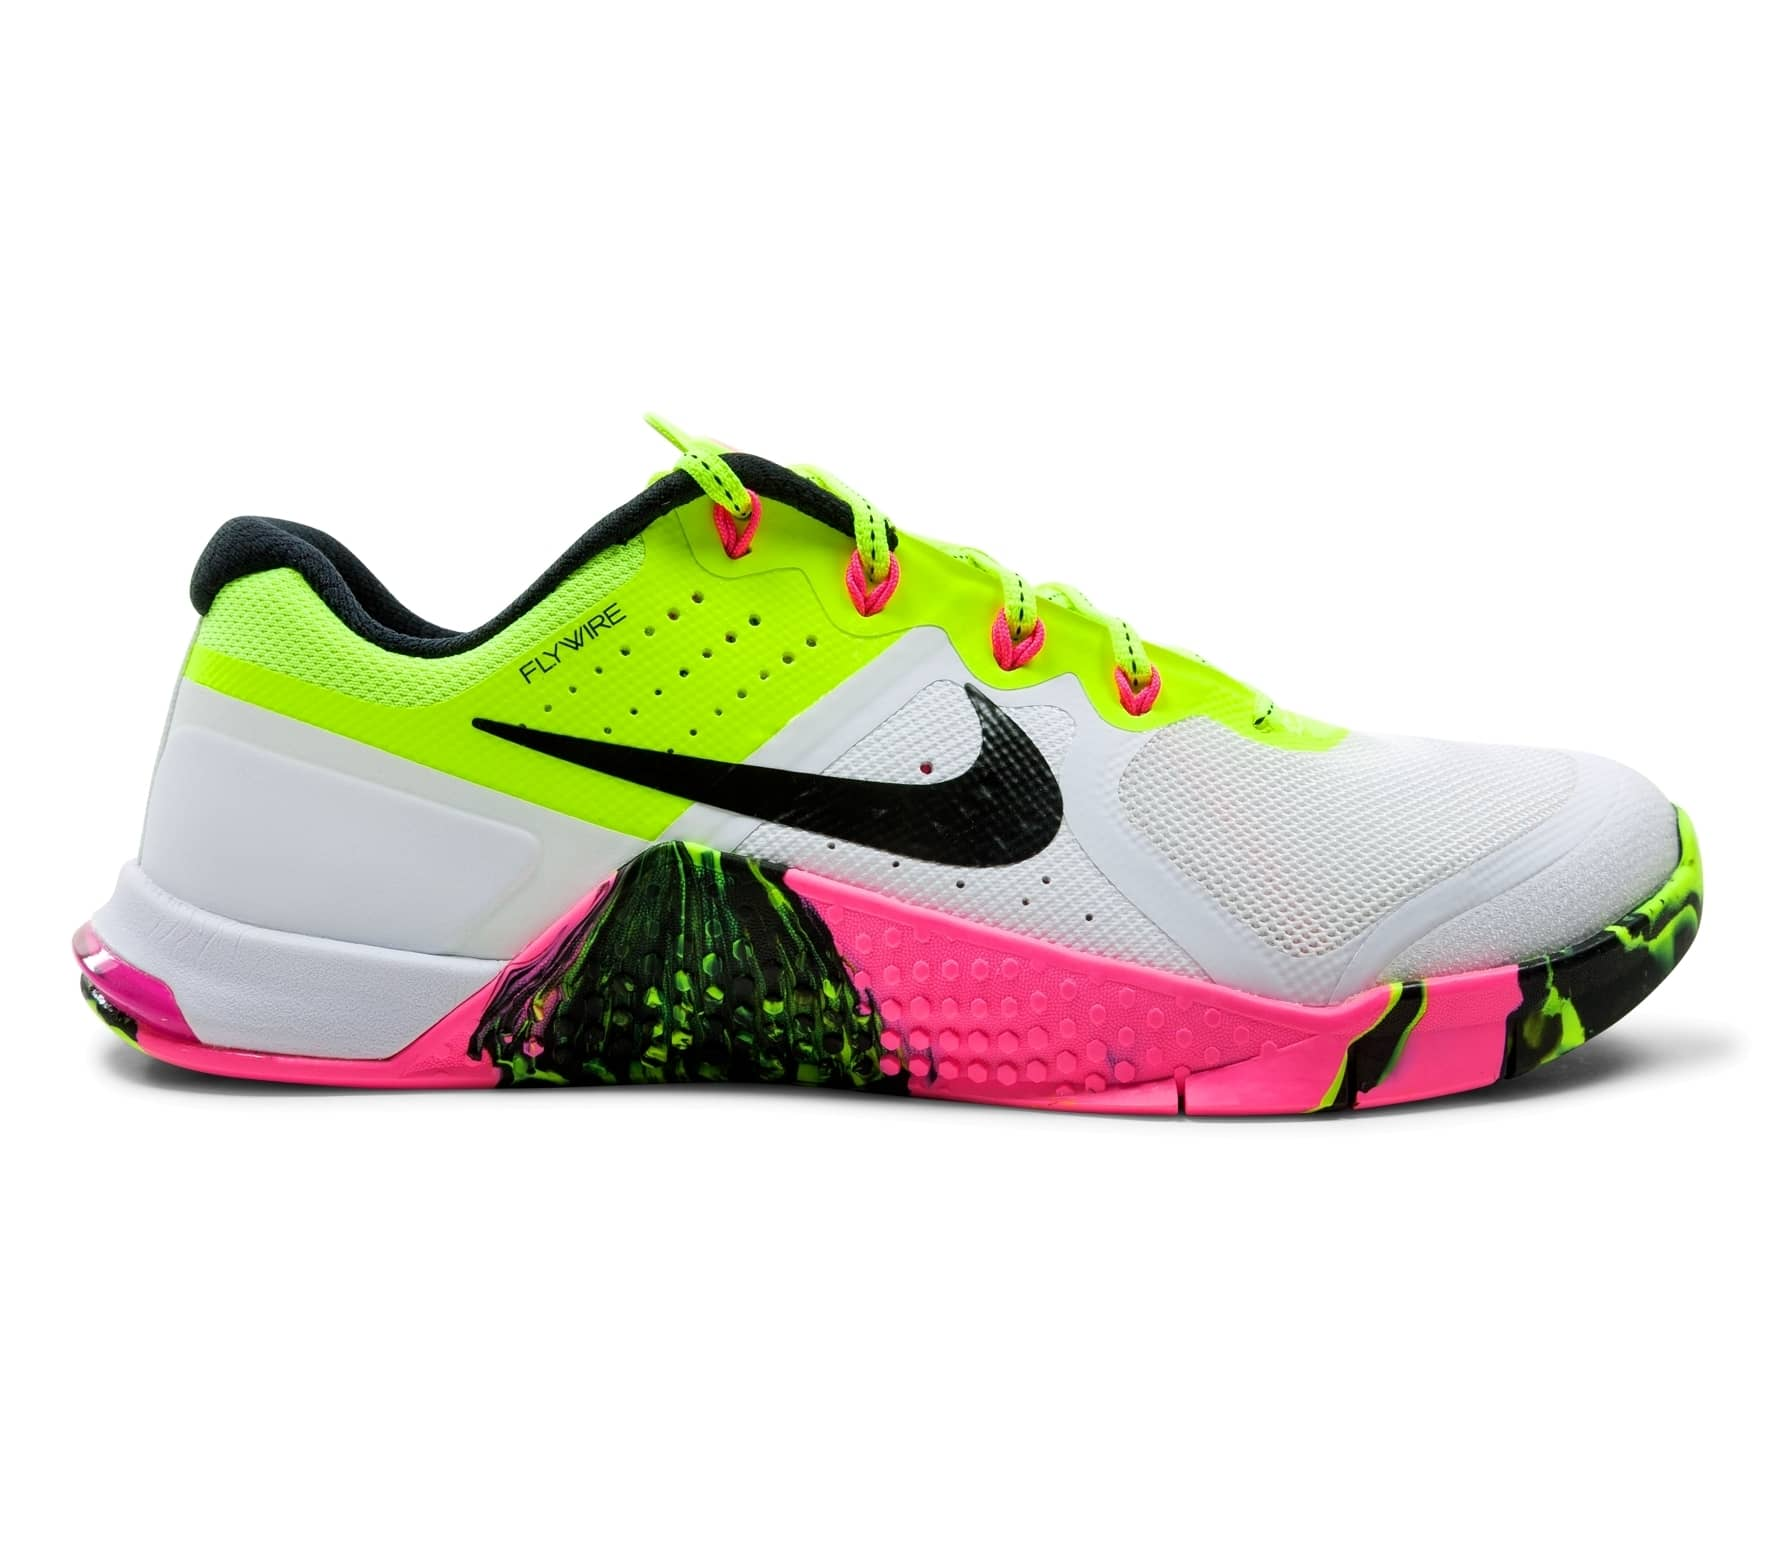 official photos 97e1f b3a93 Nike - Metcon 2 OC women s training shoes (multi-coloured)